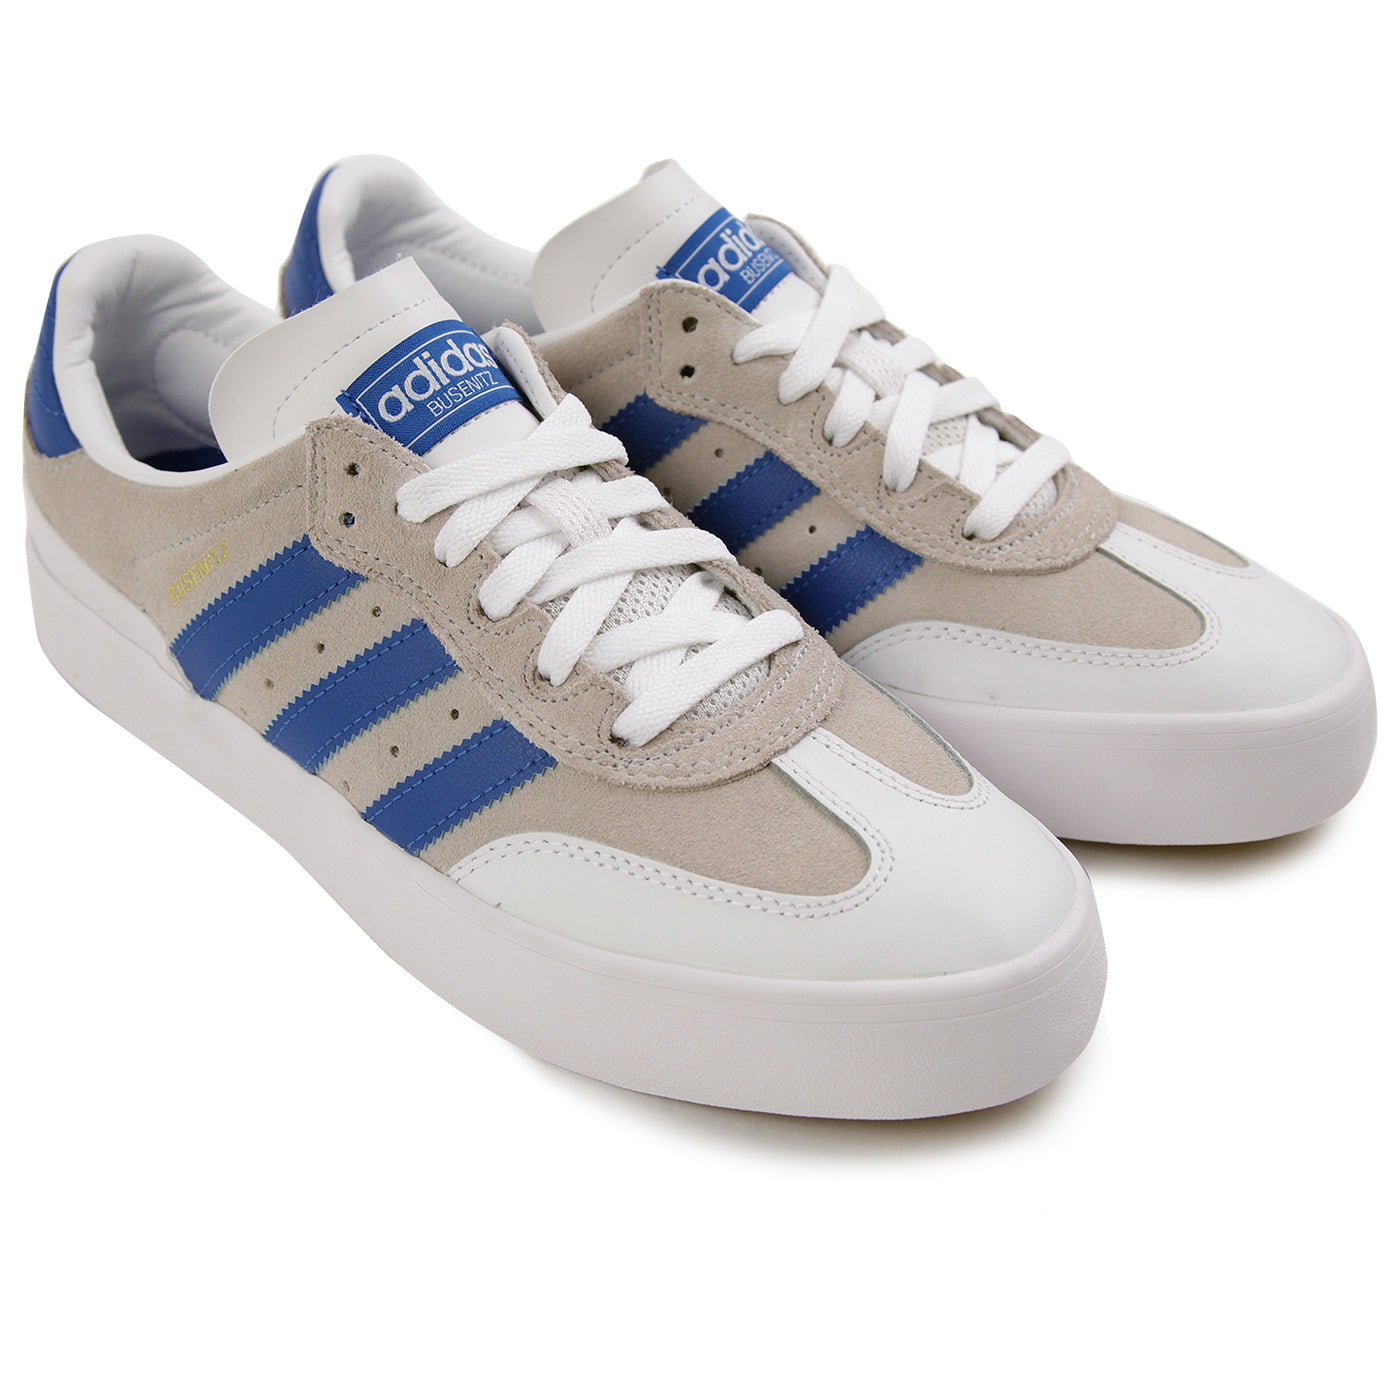 ef8836d7364 Adidas Busenitz Vulc RX Skate Shoes - Crystal White   Blue Bird   Footwear  White. Size Charts